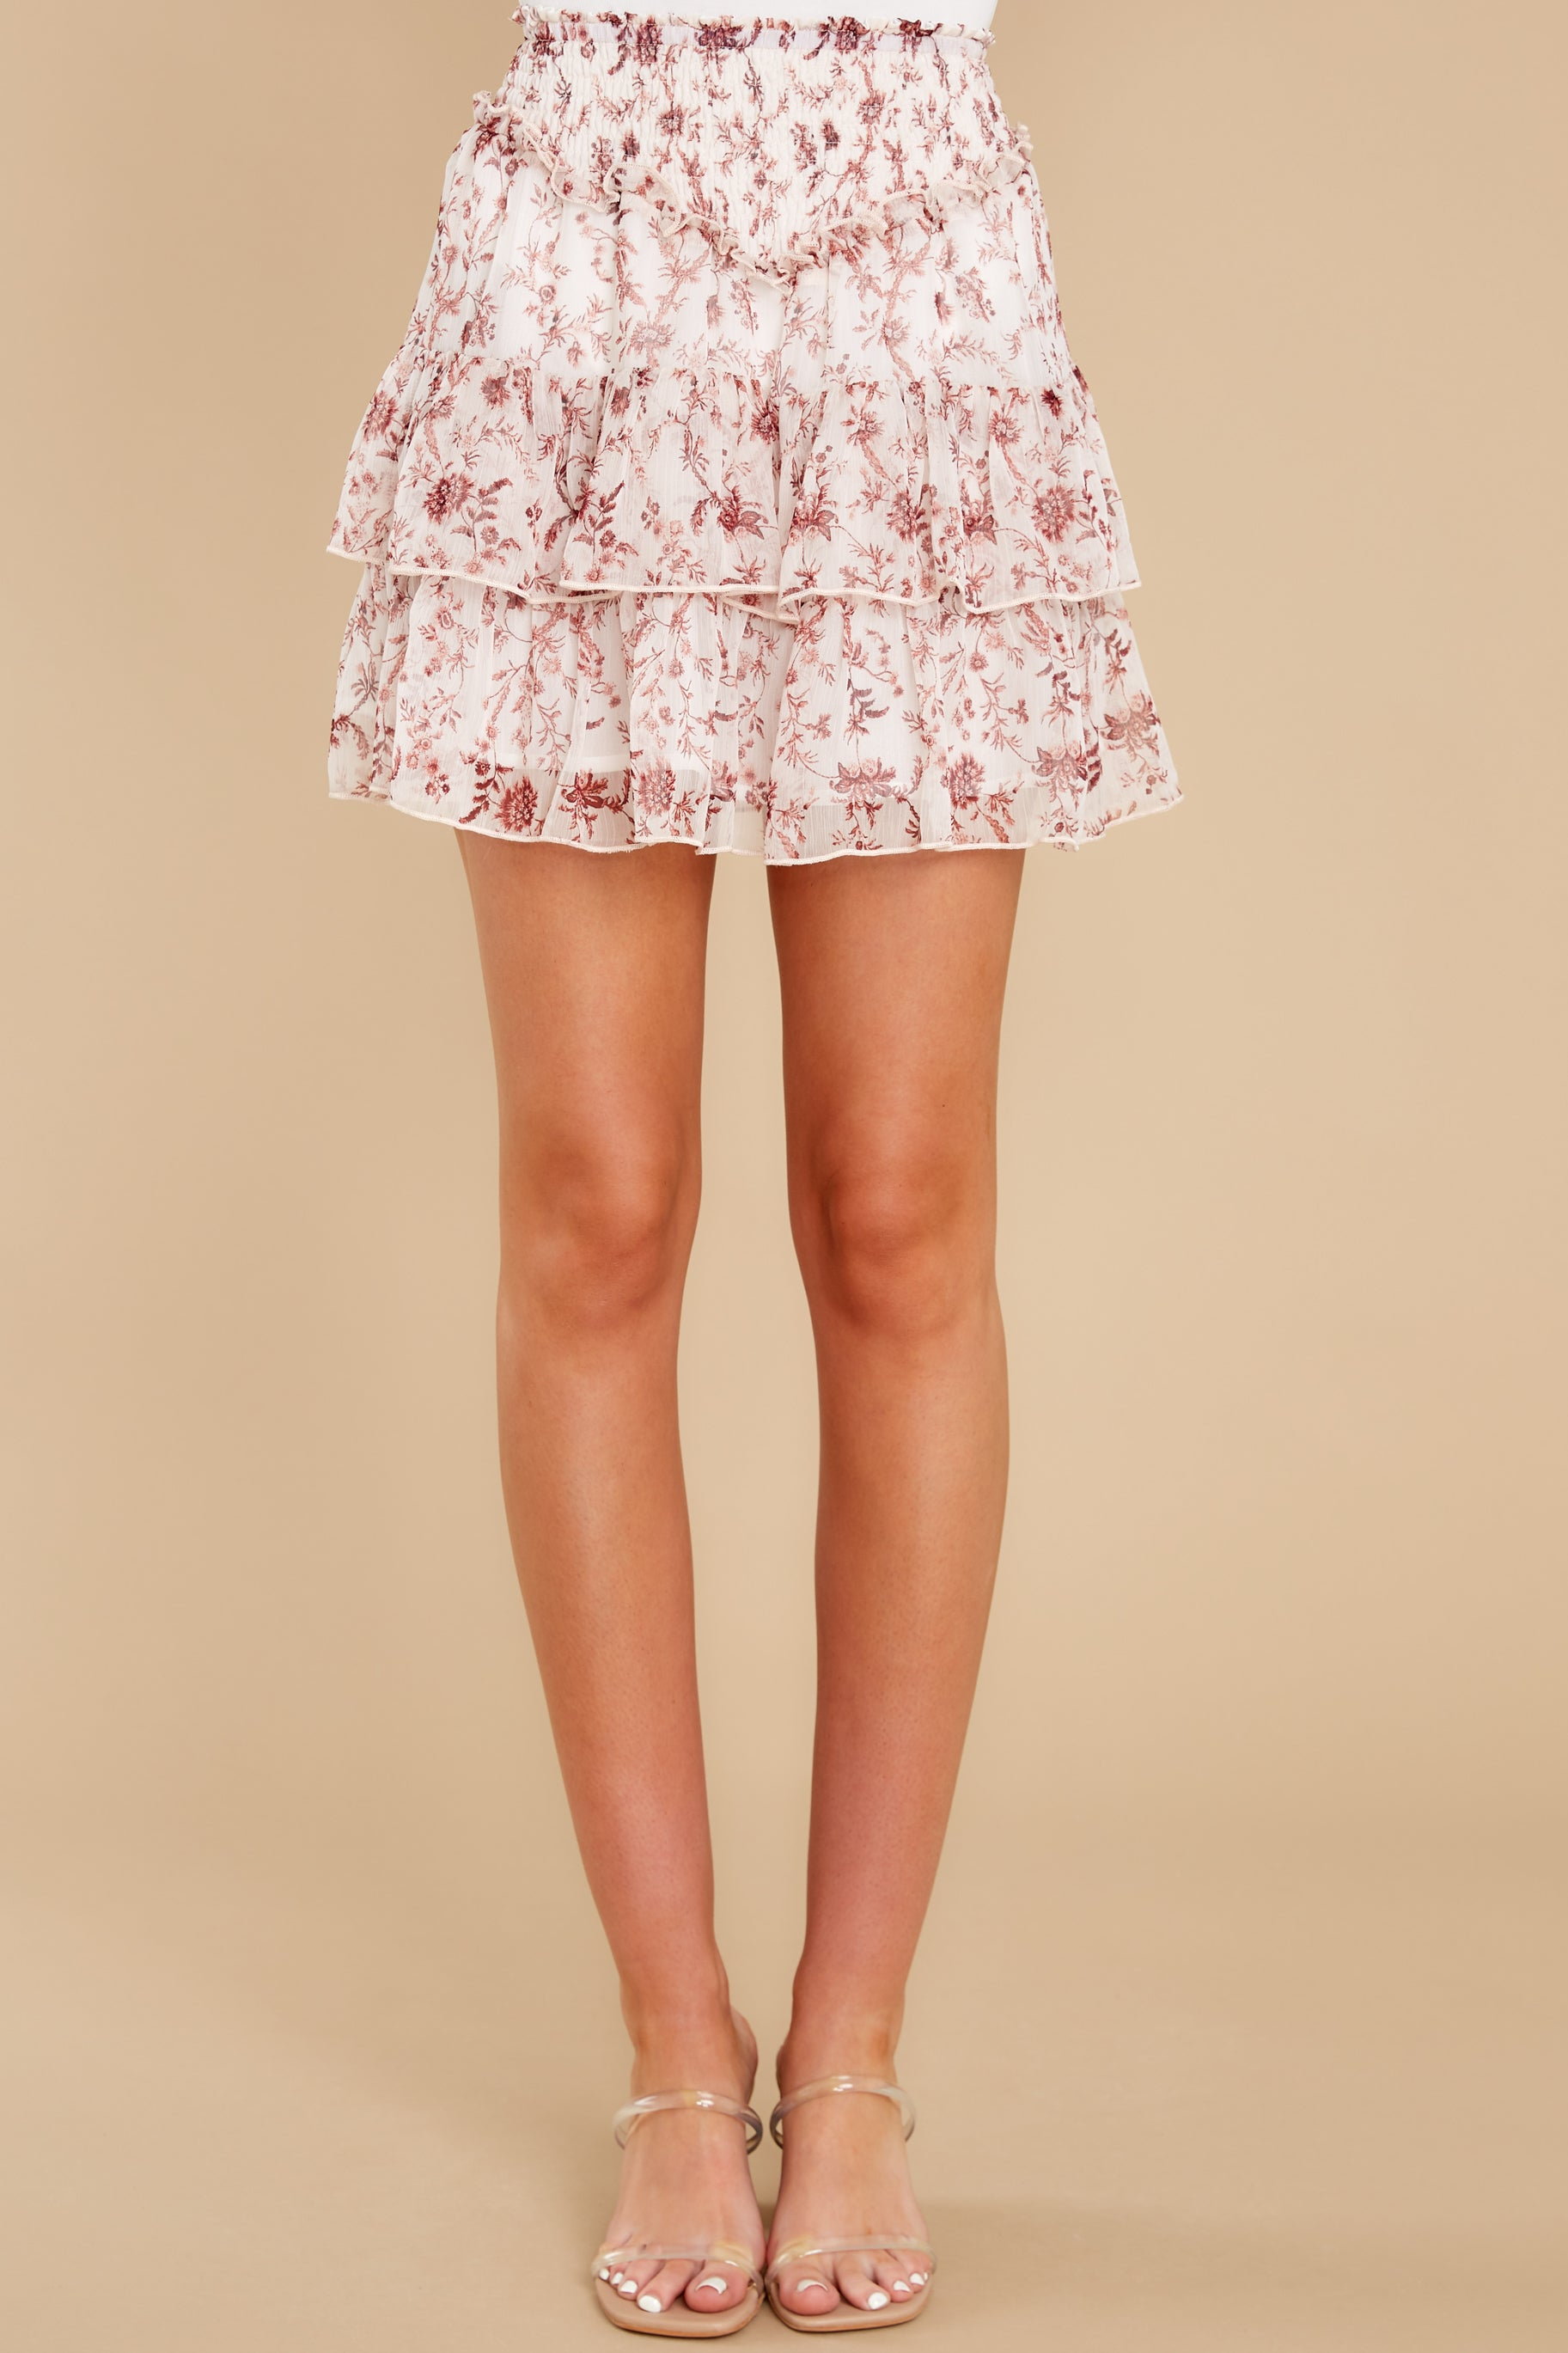 2 Melannie White Print Mini Skirt at reddress.com